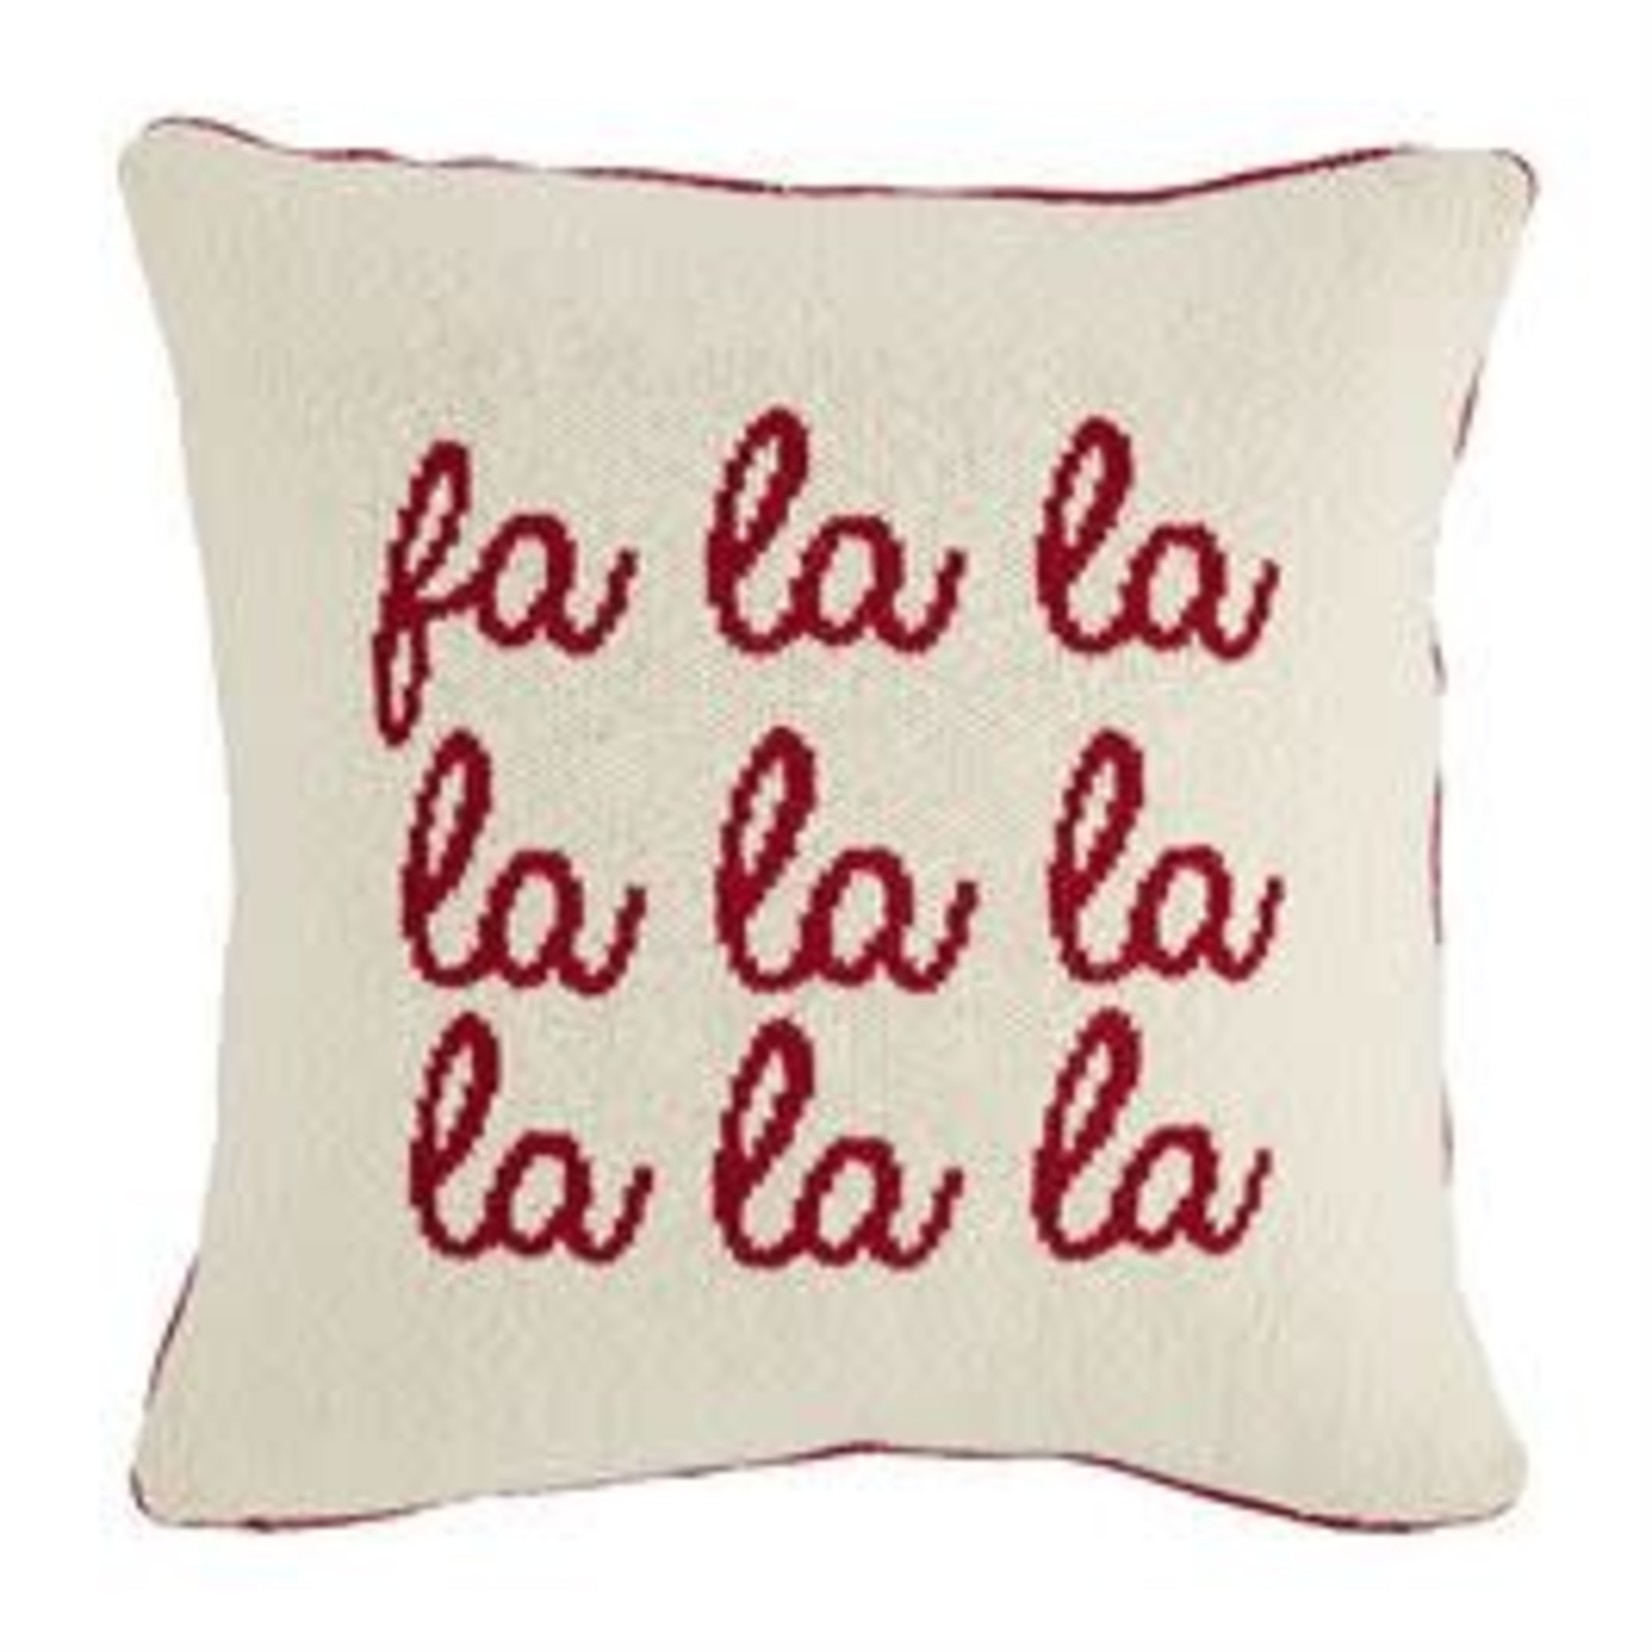 Mudpie REVERSIBLE WOVEN KNIT CHRISTMAS PILLOWS